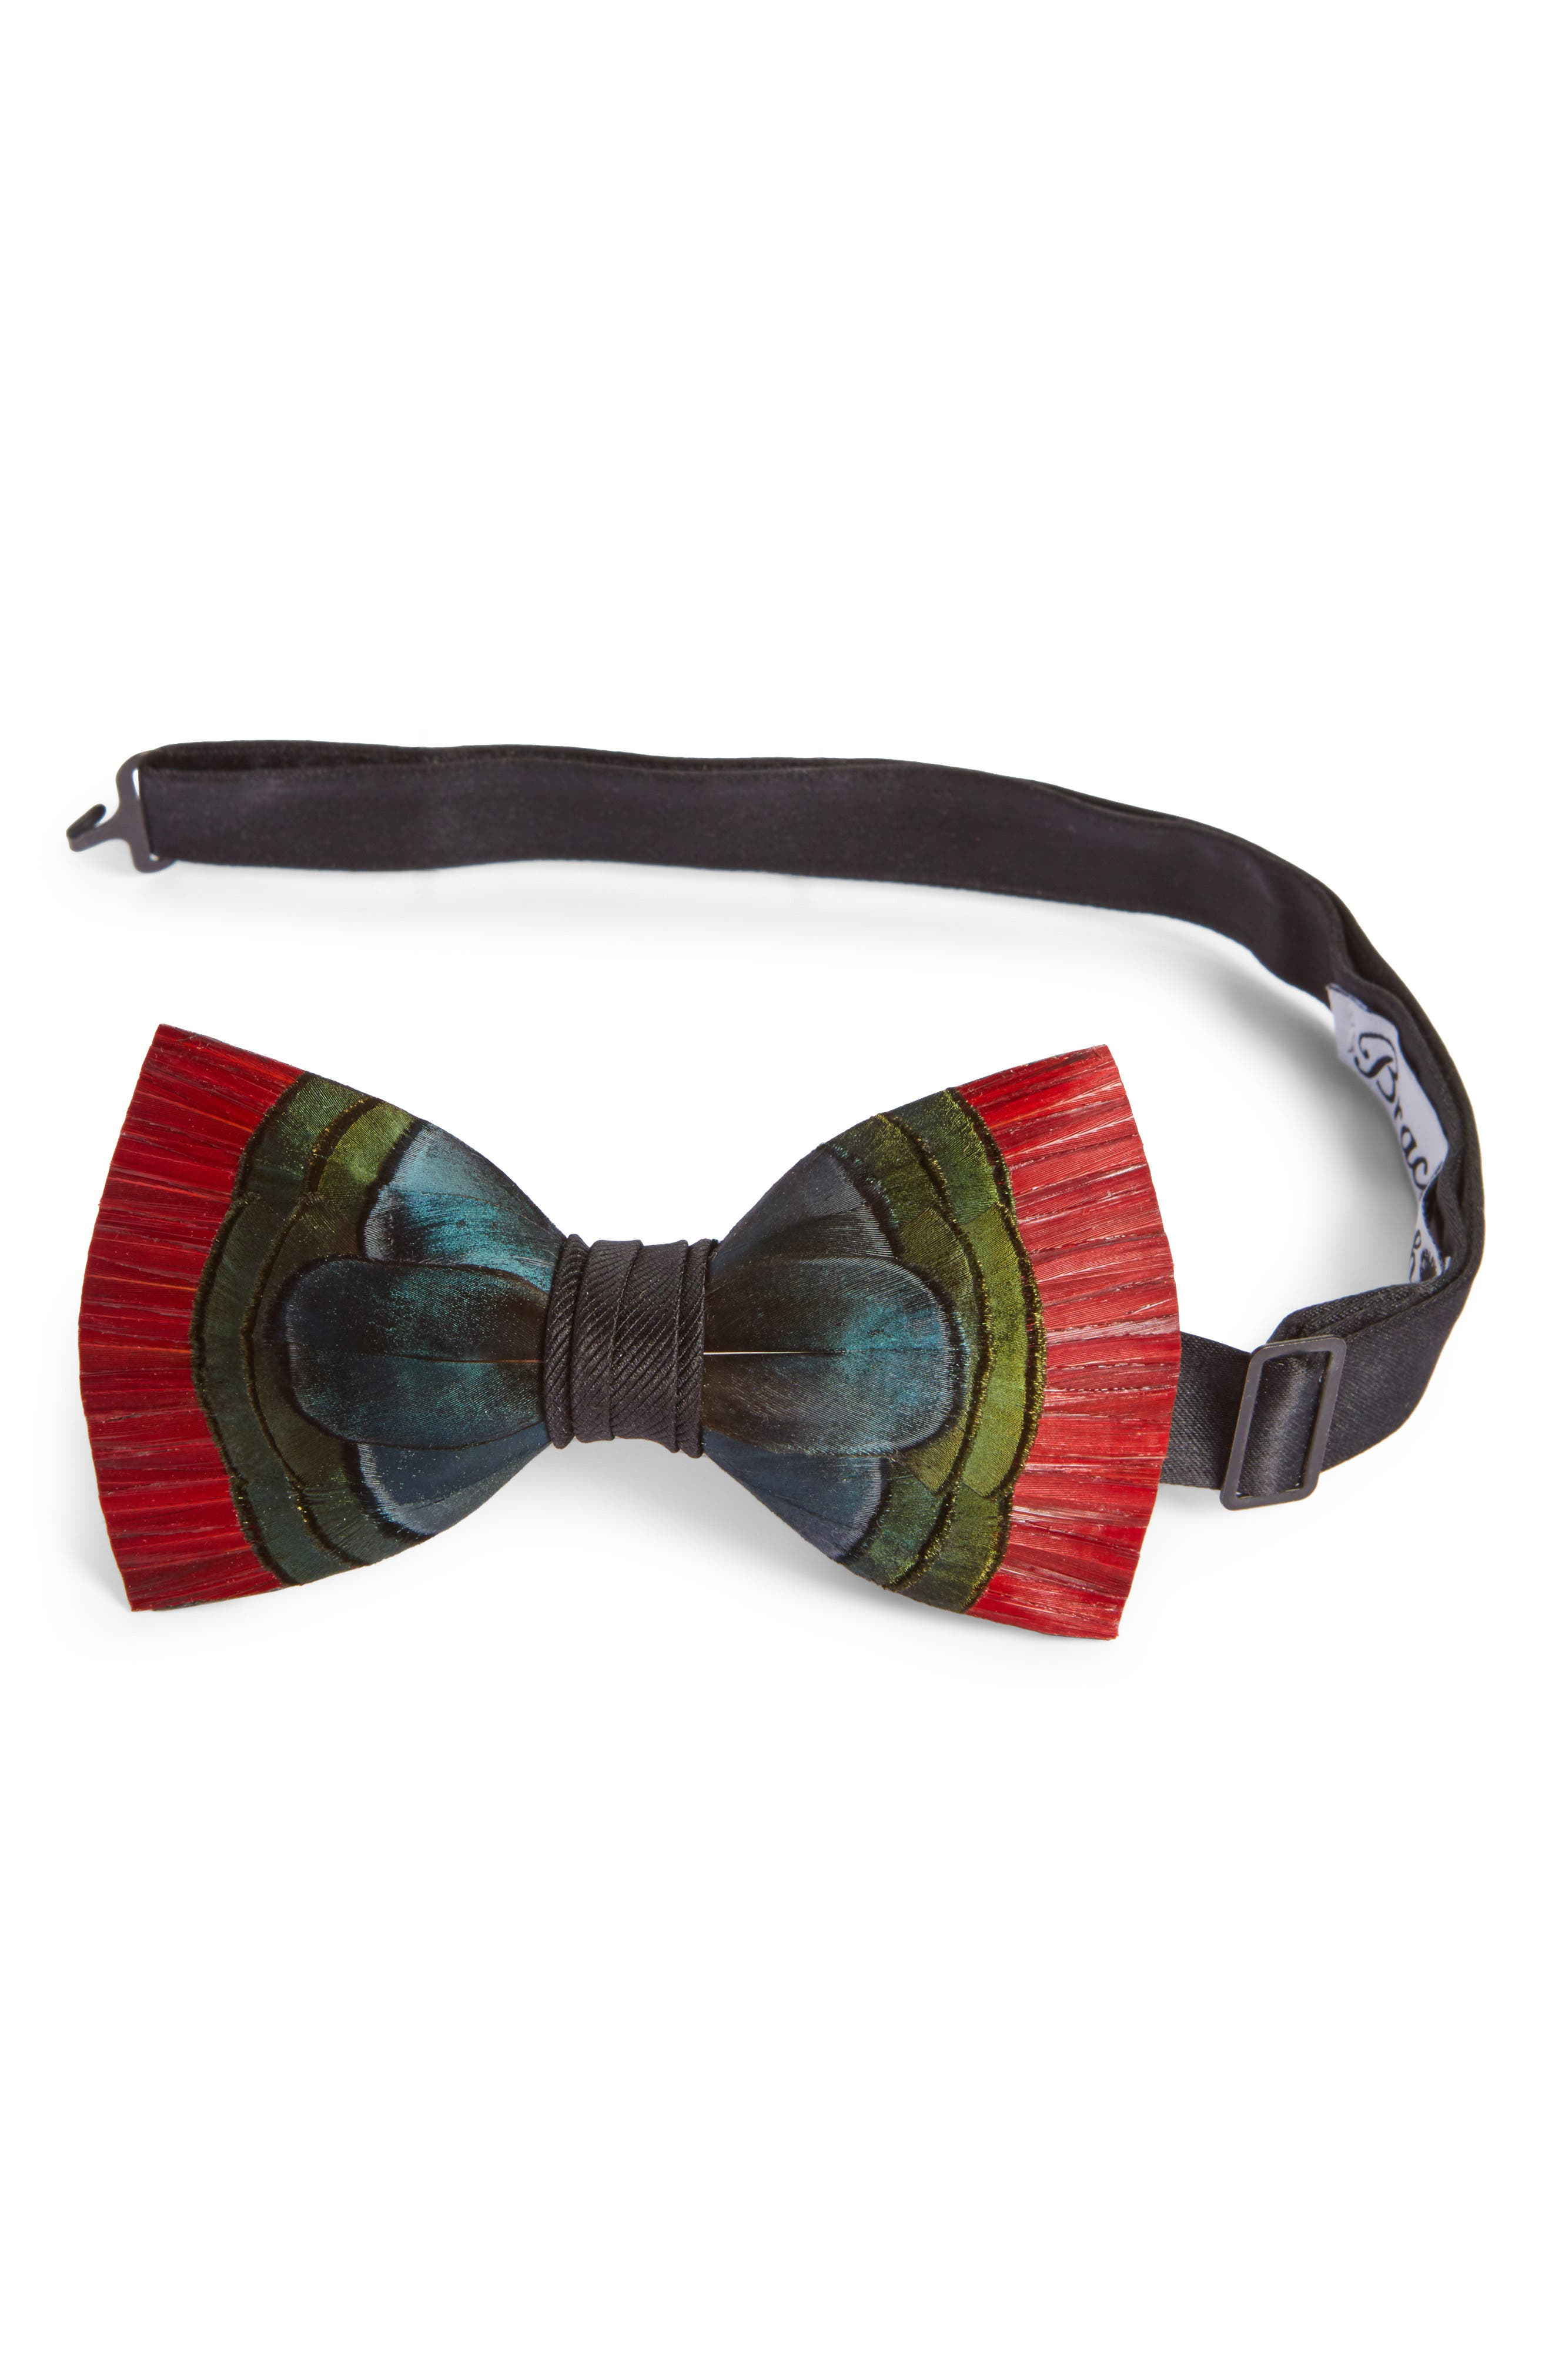 Hemingway Feather Bow Tie,                             Main thumbnail 1, color,                             NAVY/ GREEN/ RED